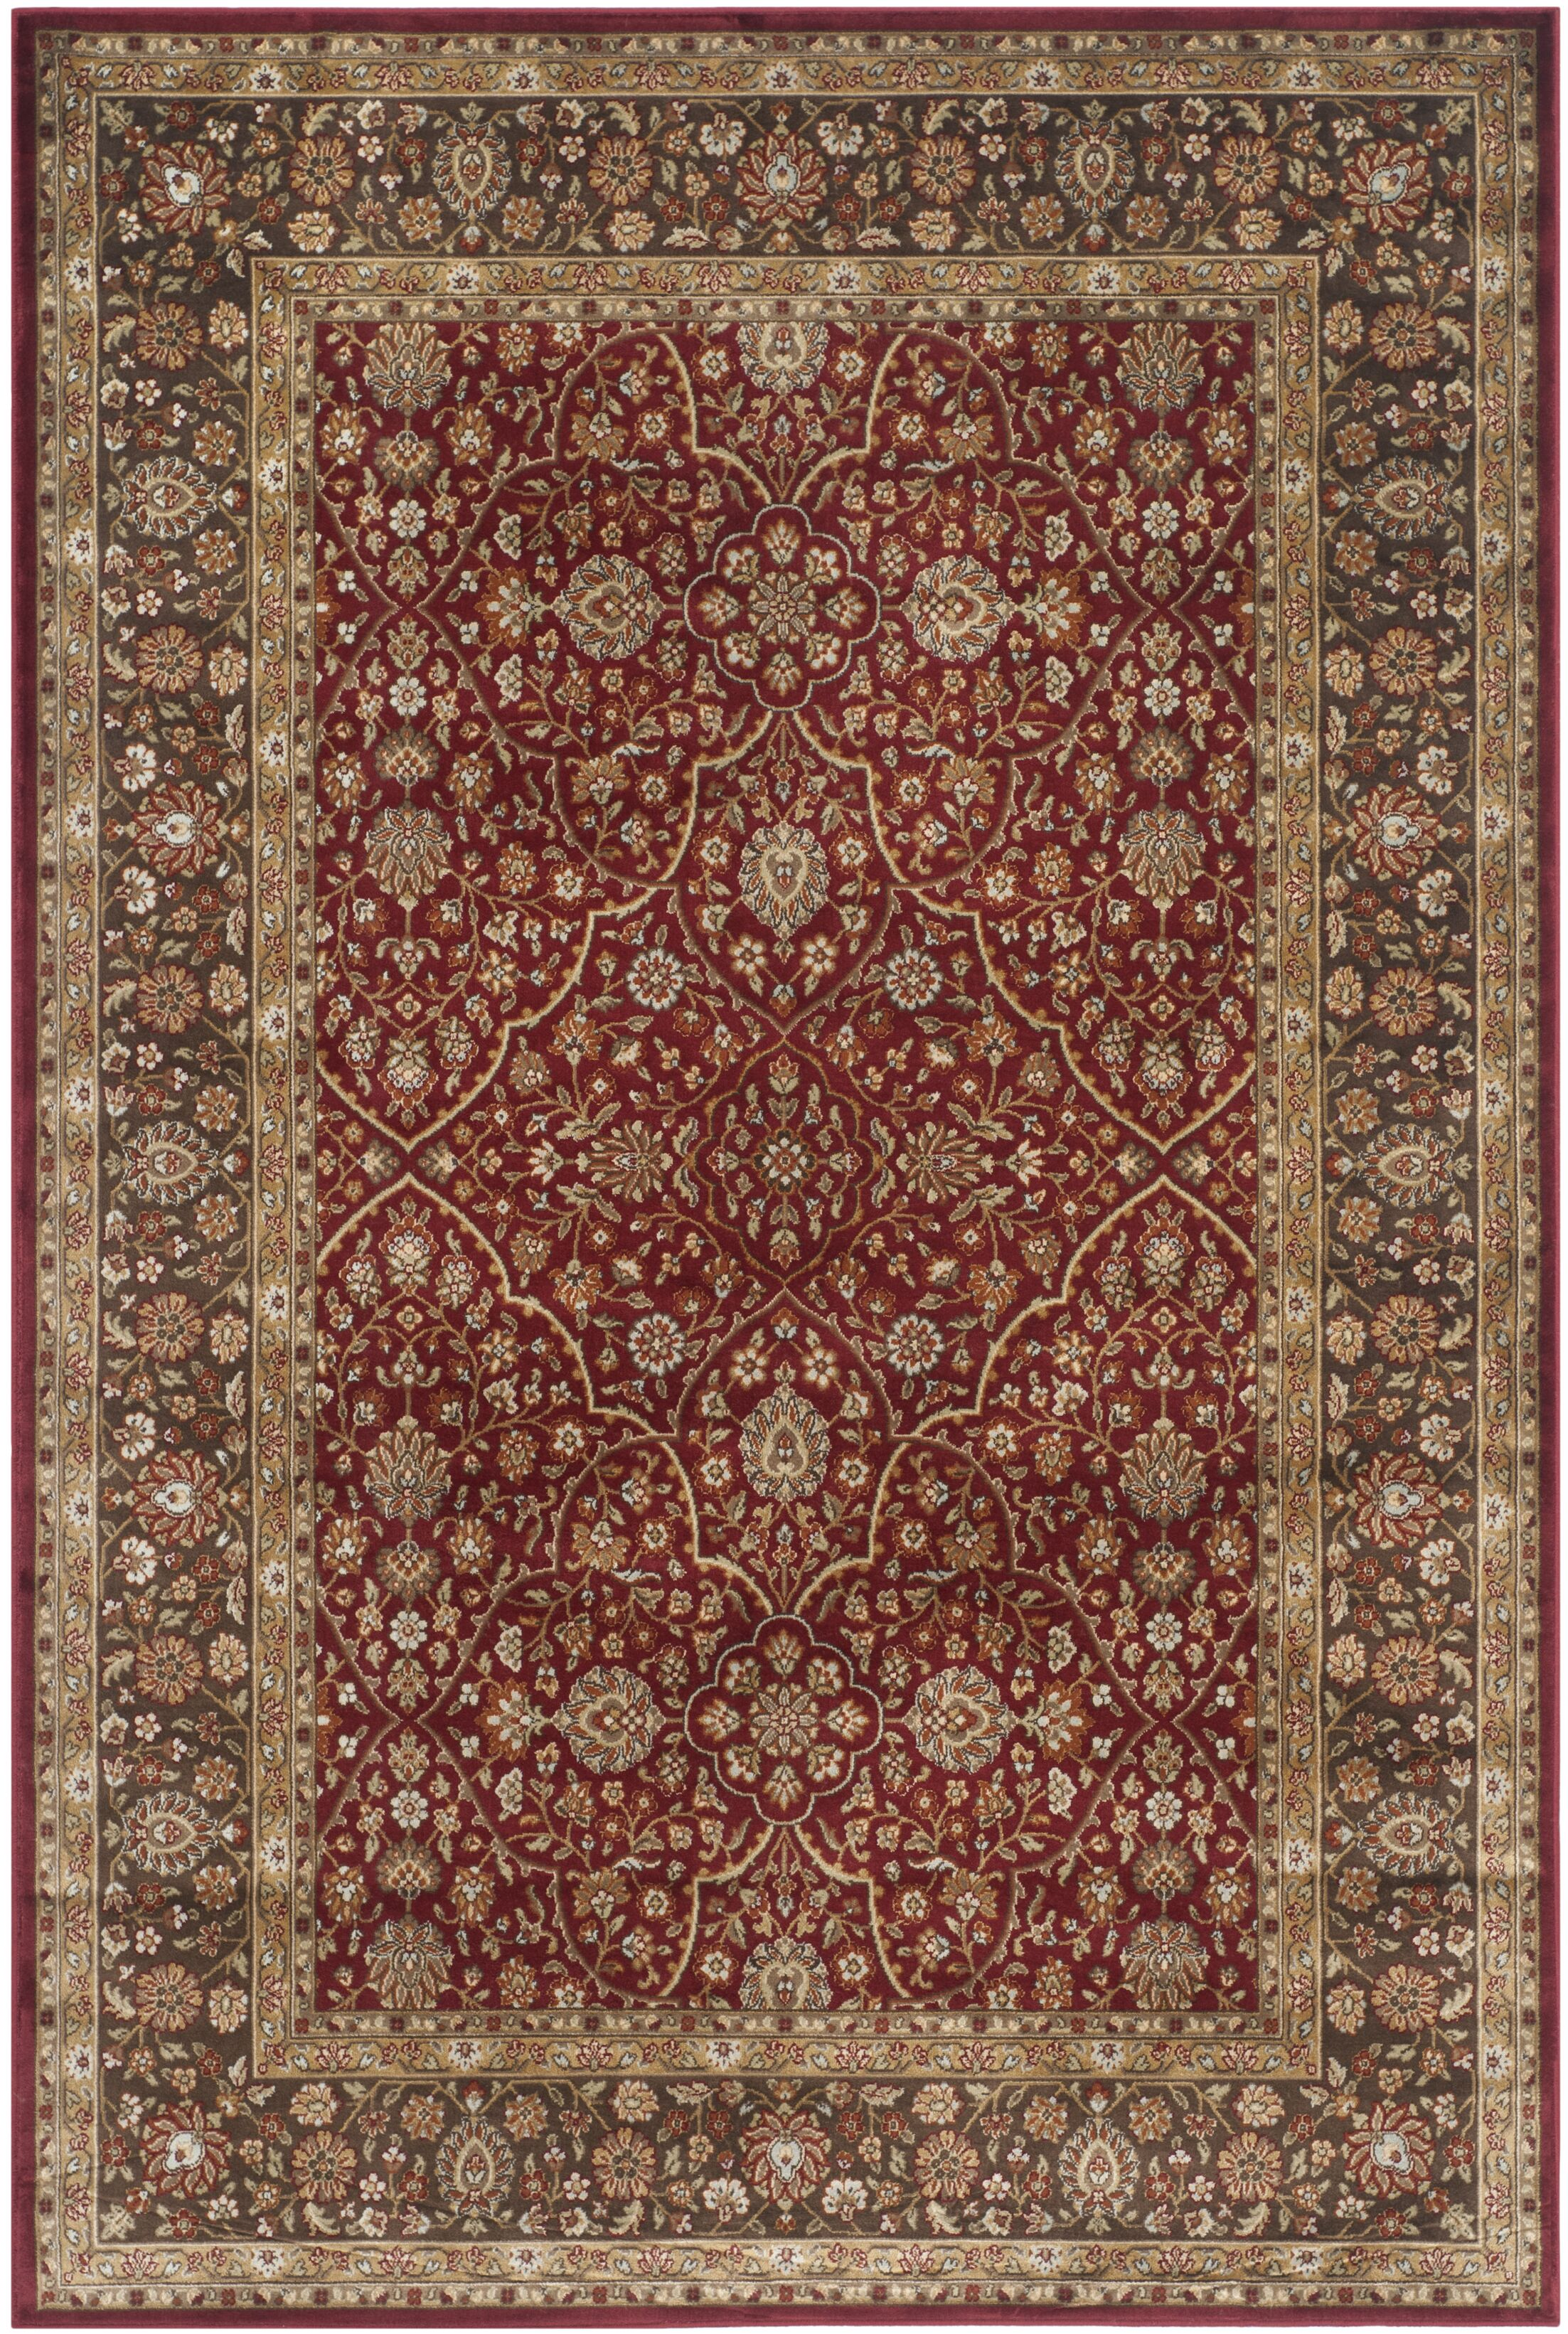 Petronella Red/Brown Area Rug Rug Size: Rectangle 5'3